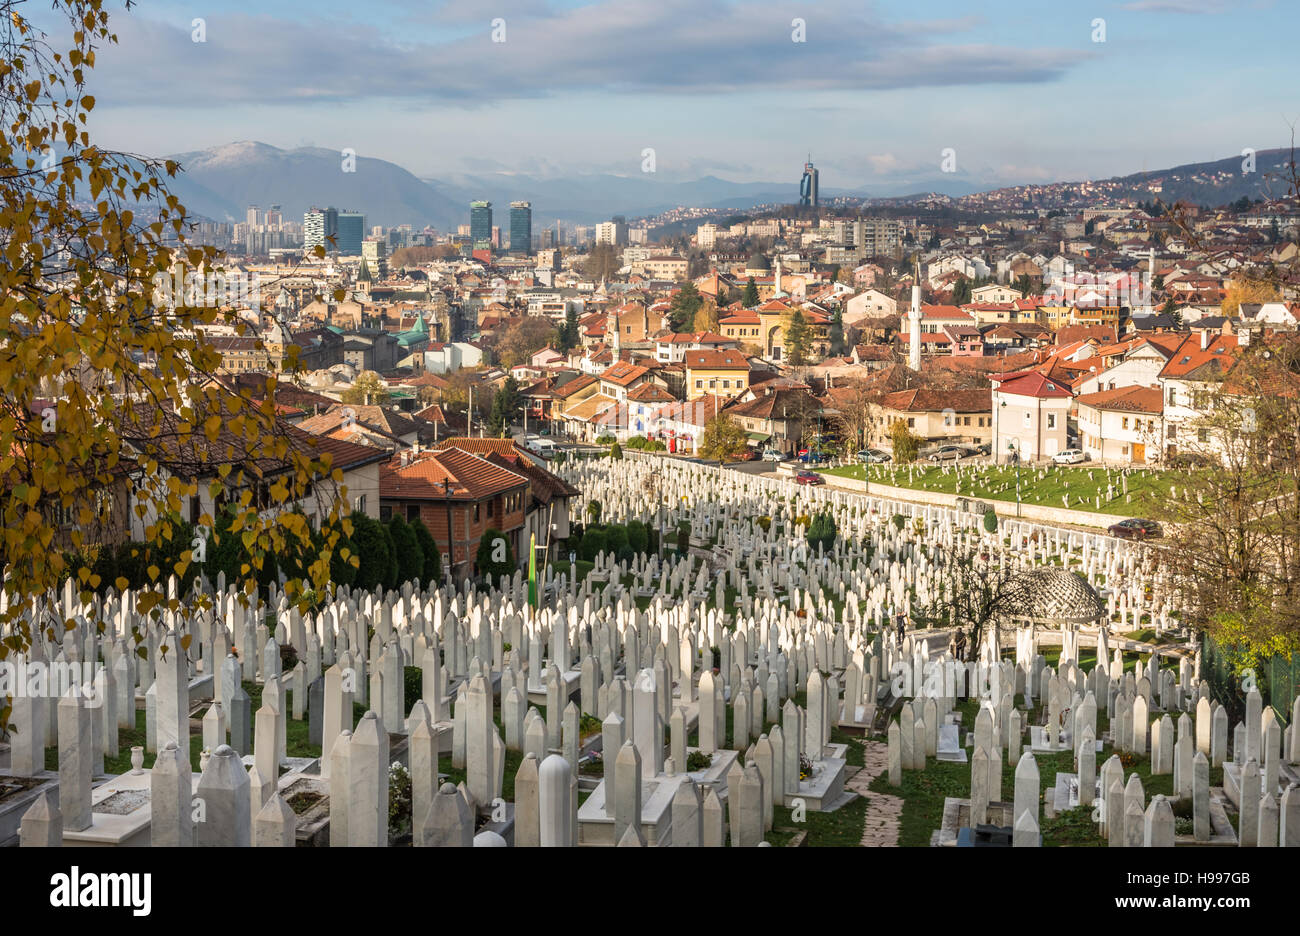 Kovaci war cemetery and Sarajevo city panorama - Stock Image